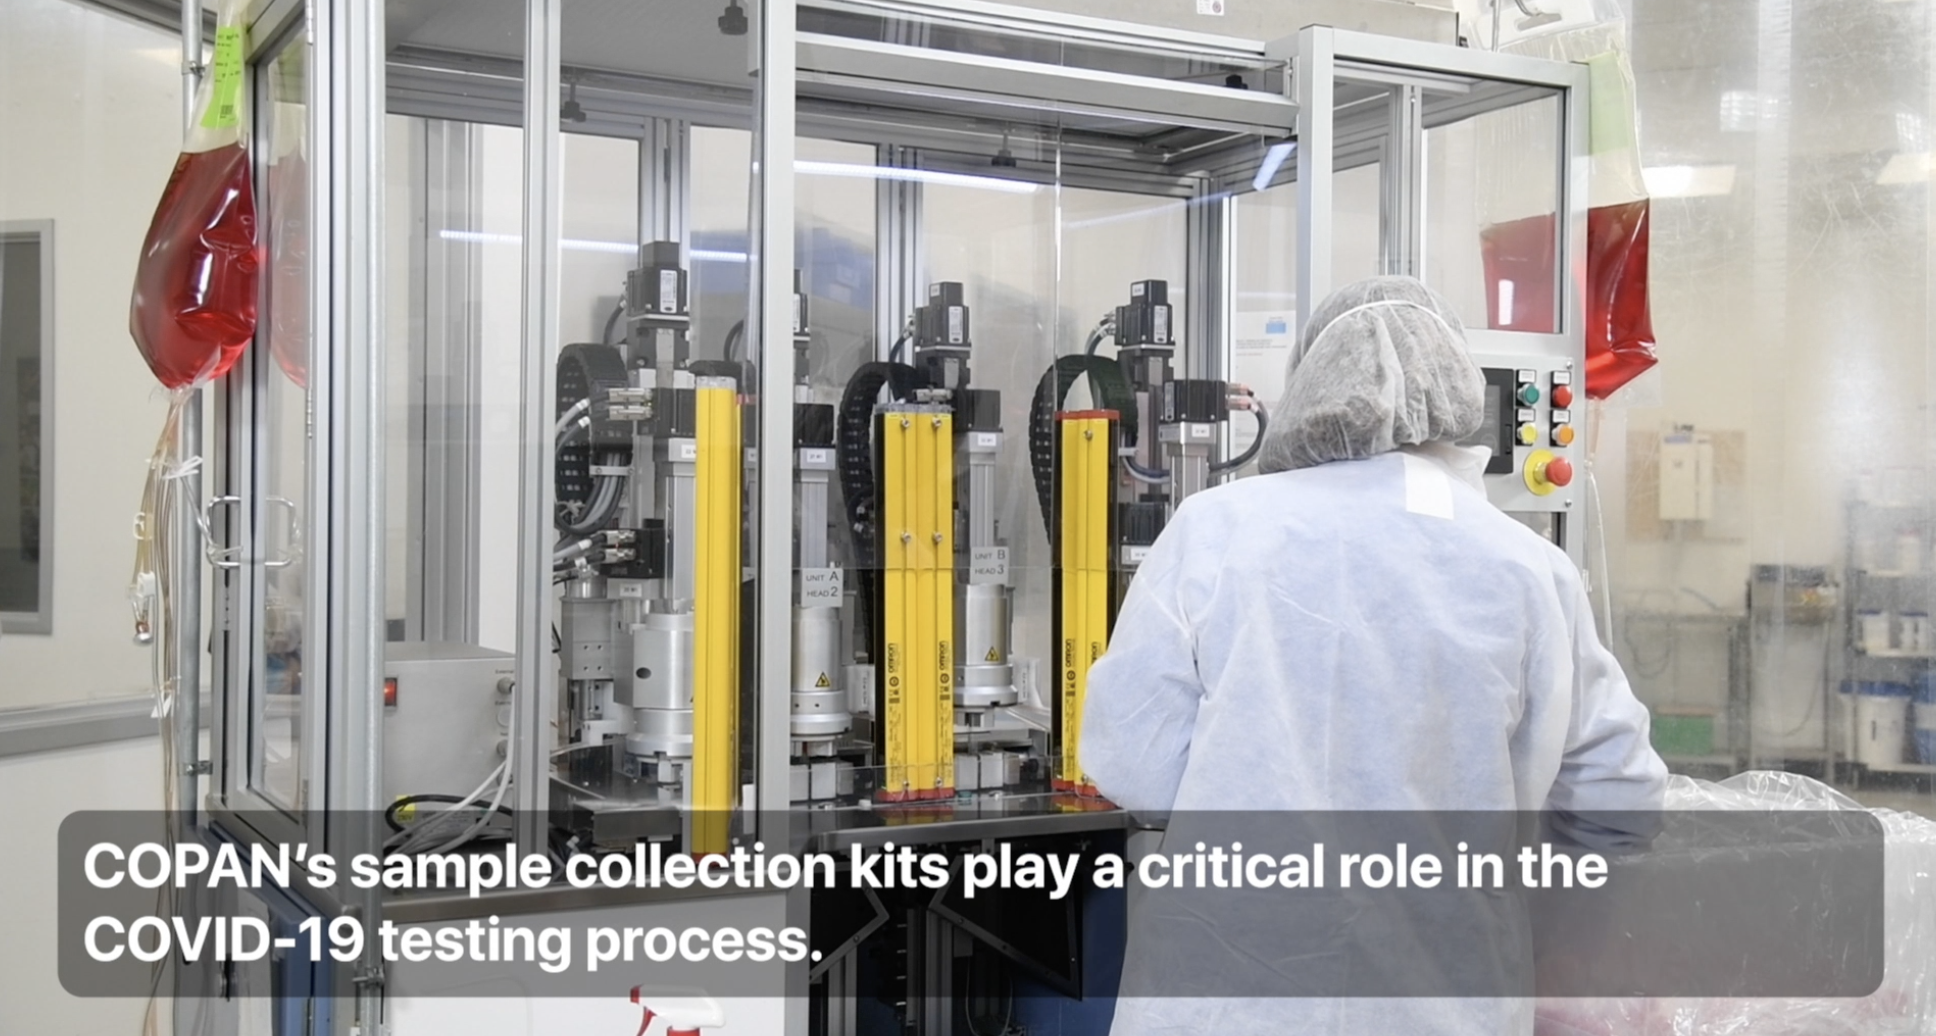 Apple awards $10 million from Advanced Manufacturing Fund to COPAN Diagnostics